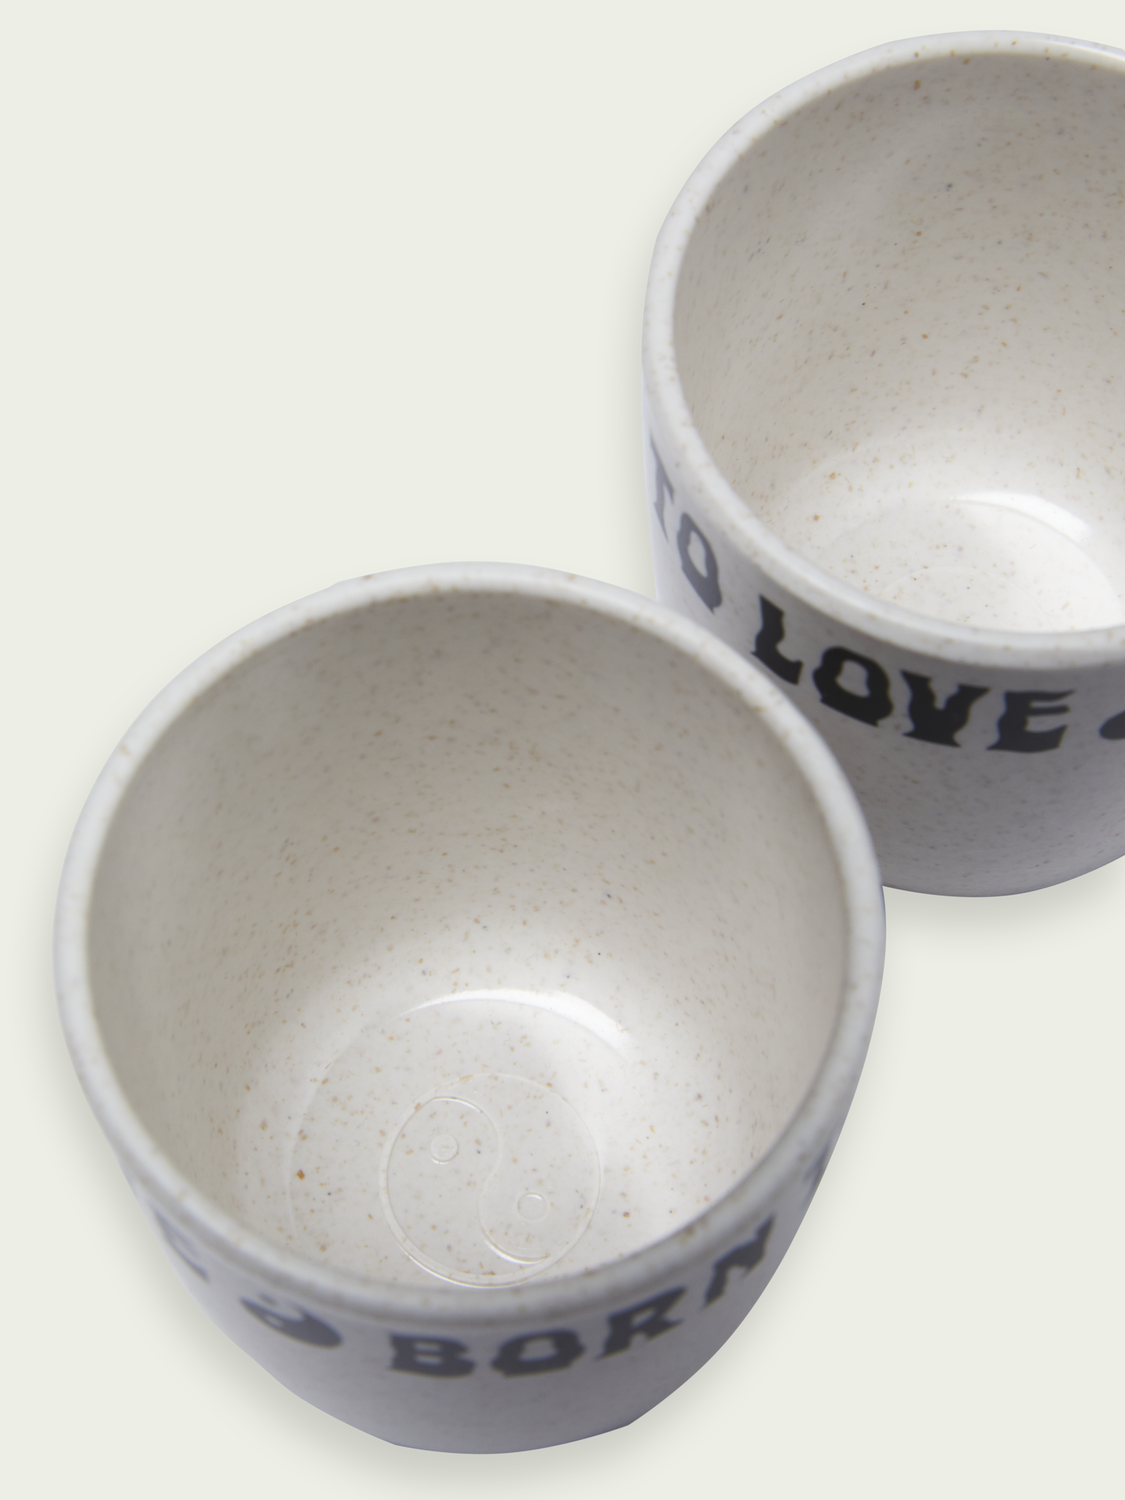 Women BORN TO LOVE espresso cup set